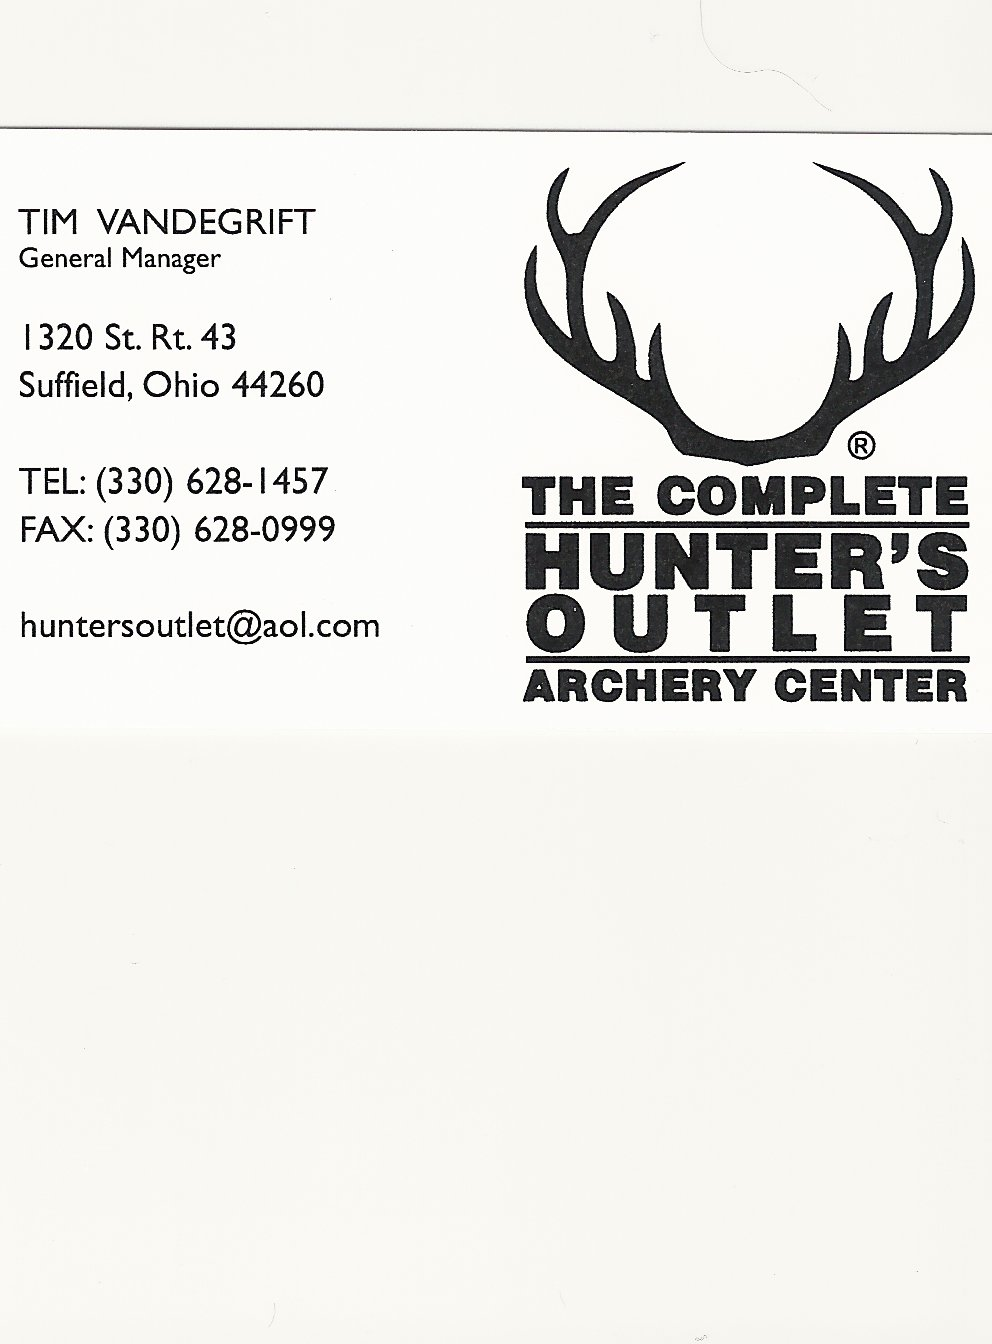 Tim Vandegrift Hunters Outlet